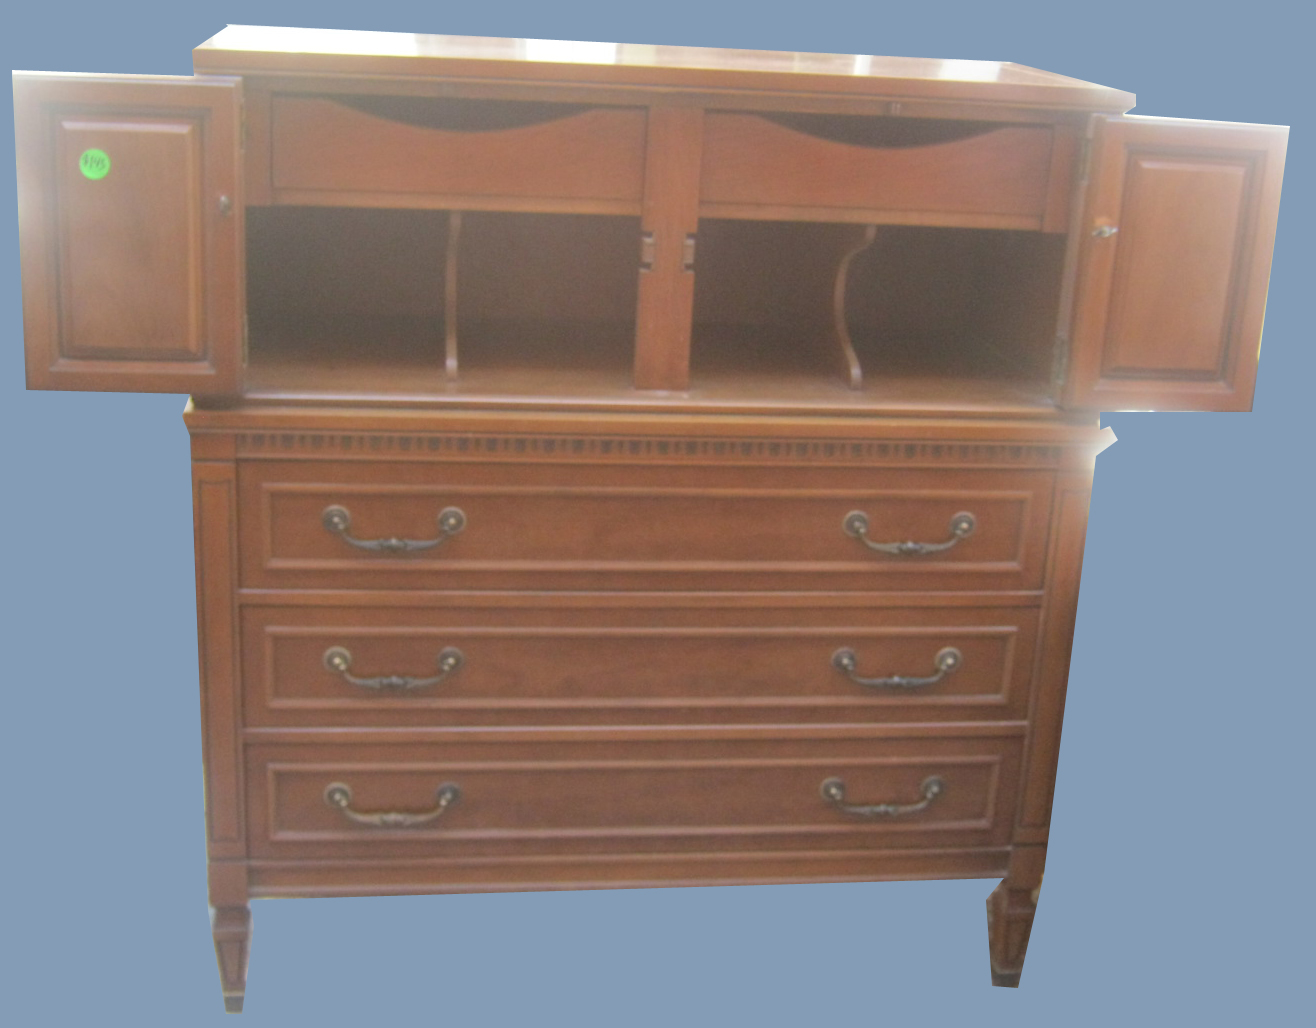 #8C603F Uhuru Furniture & Collectibles: Vintage Chest With Drawers And Shelves  with 1316x1028 px of Recommended Shelves With Drawers Furniture 10281316 save image @ avoidforclosure.info